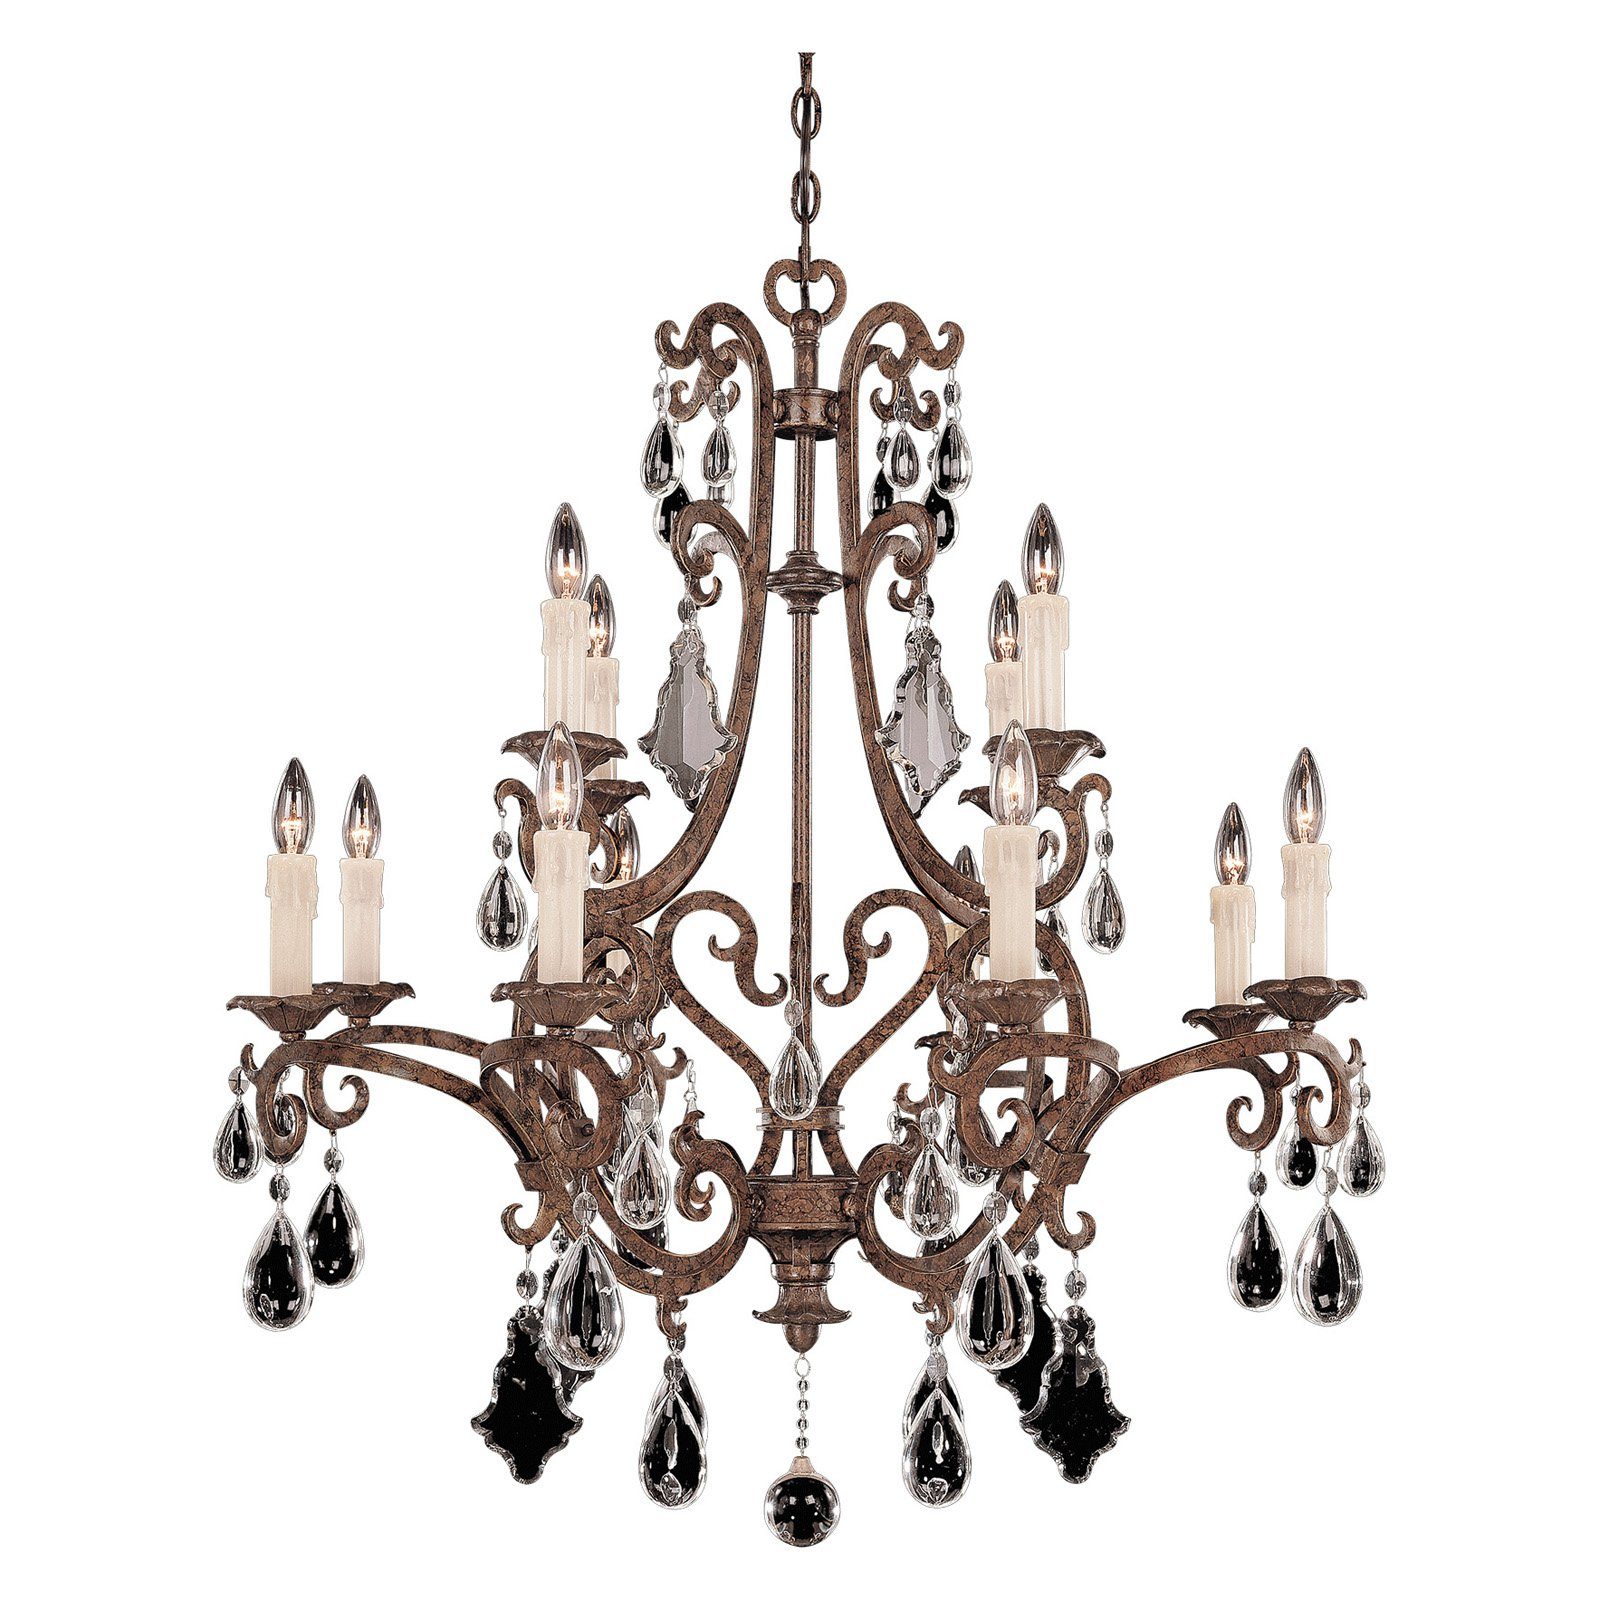 Savoy Home Florence 1-1403-12-56 Chandelier